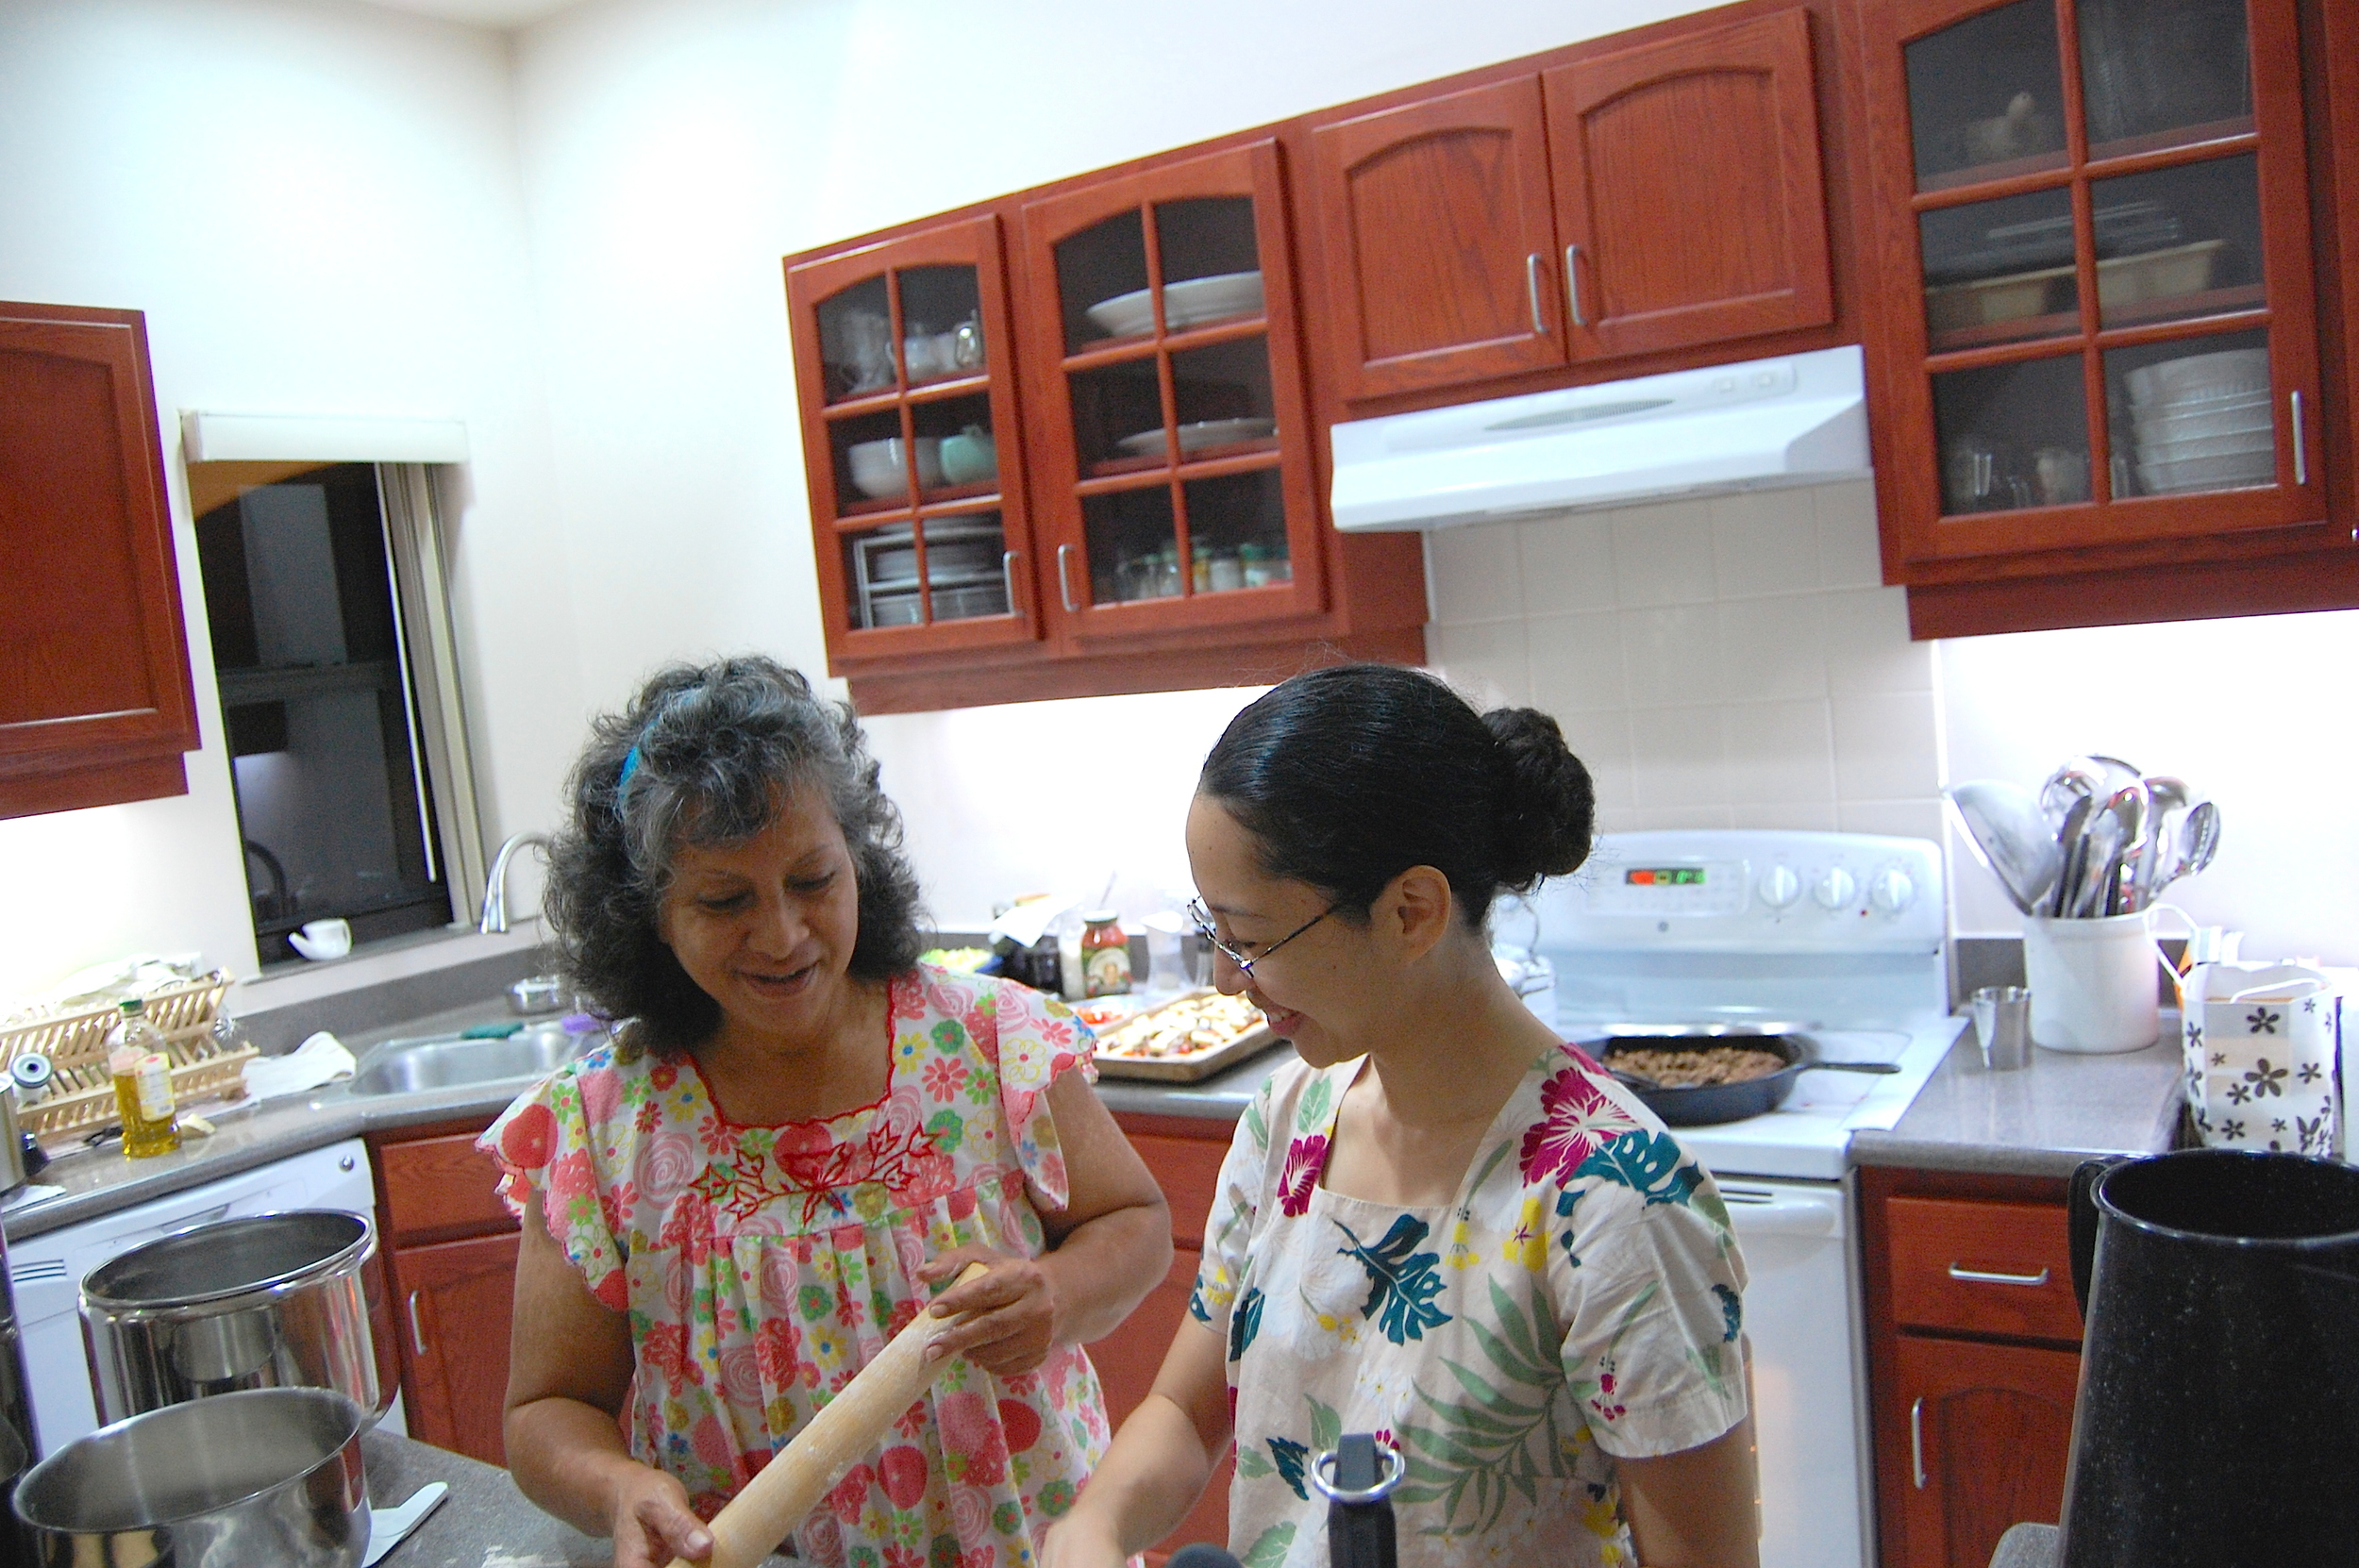 Guam 2012. I grew up with maids and had to teach myself how to cook after I got married. Here Mom wanted me to teach her how to make organic pizza from scratch from flour we milled.